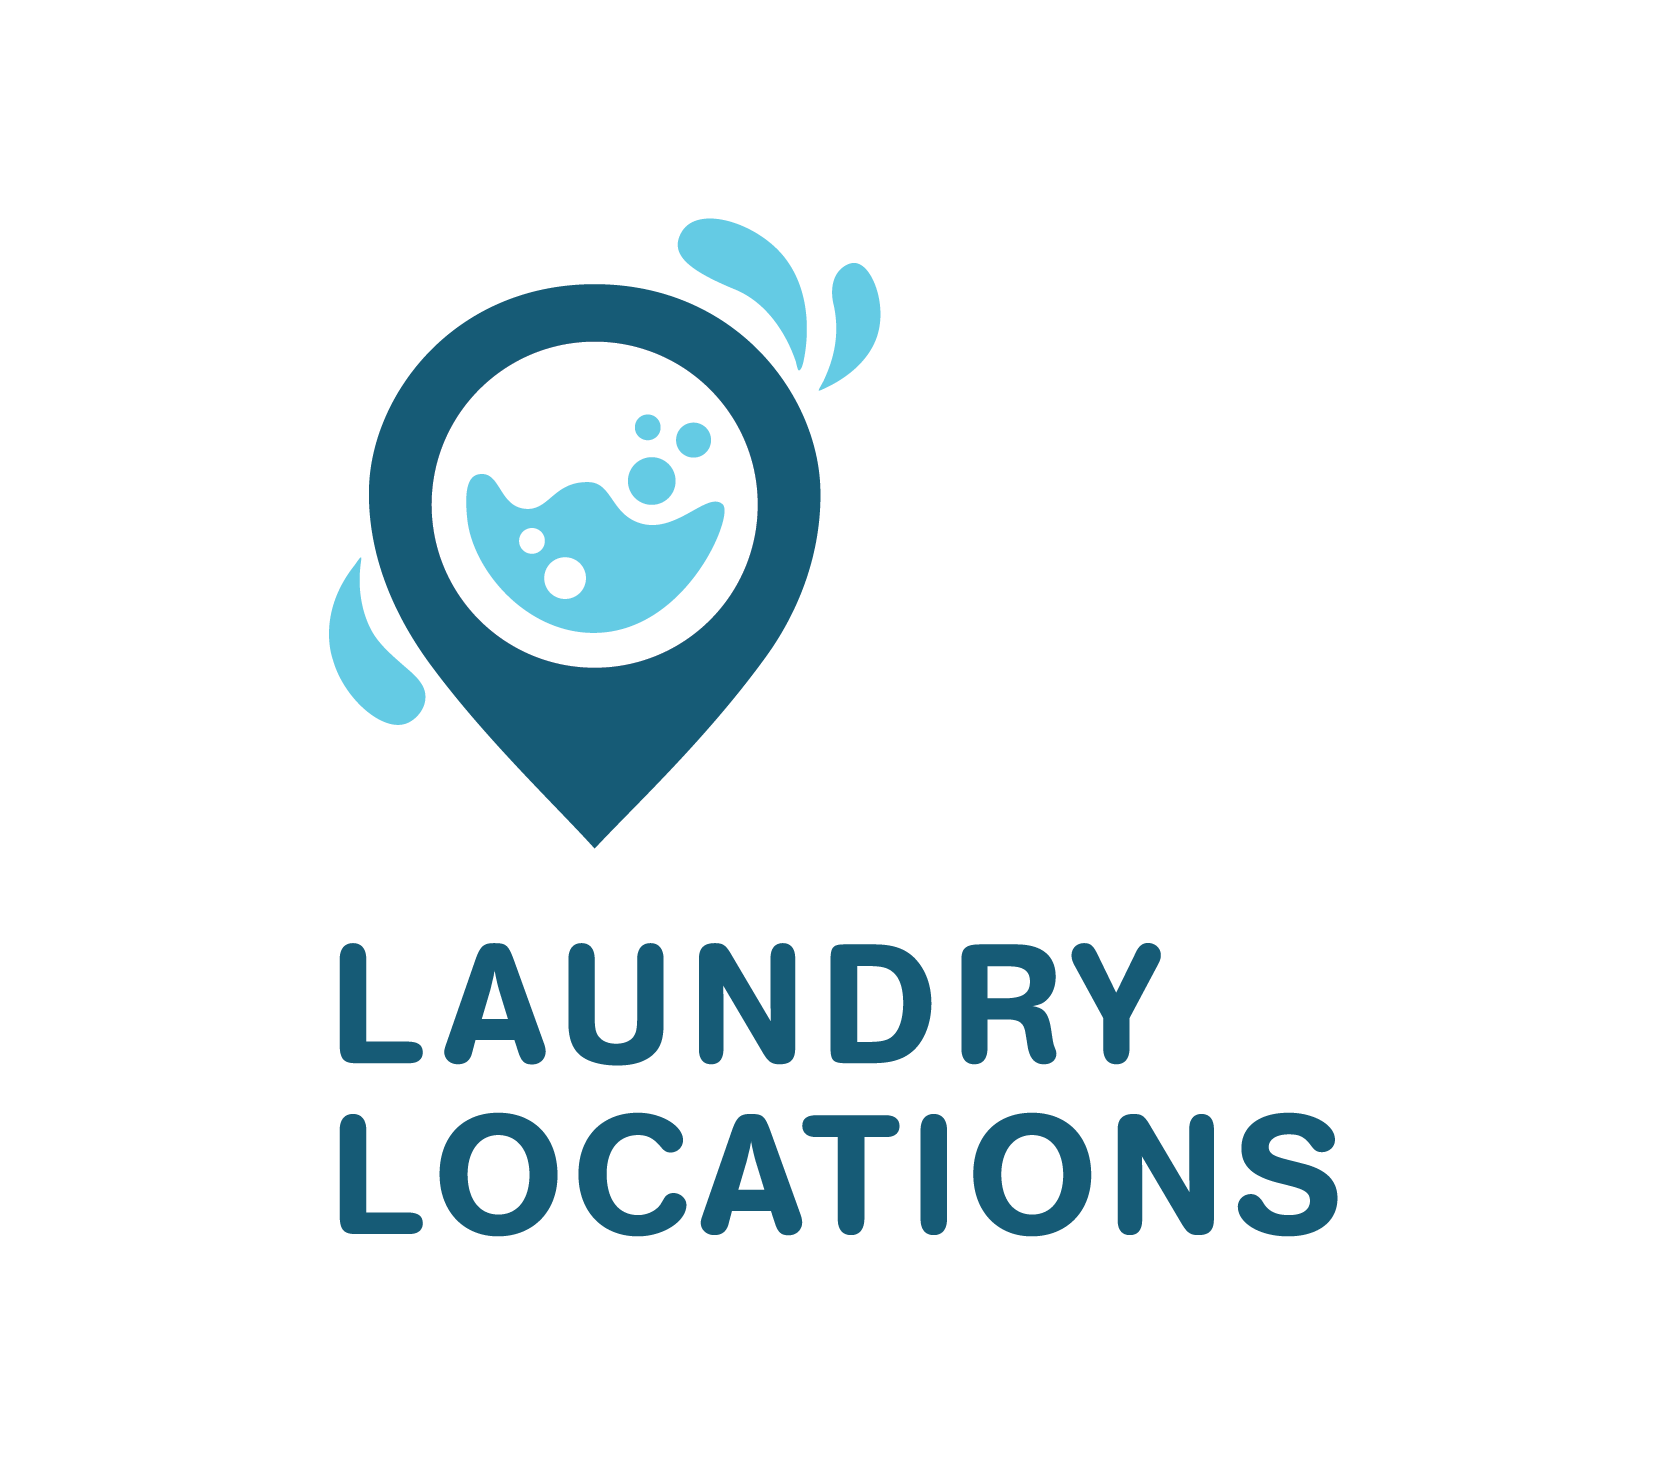 Laundry Locations